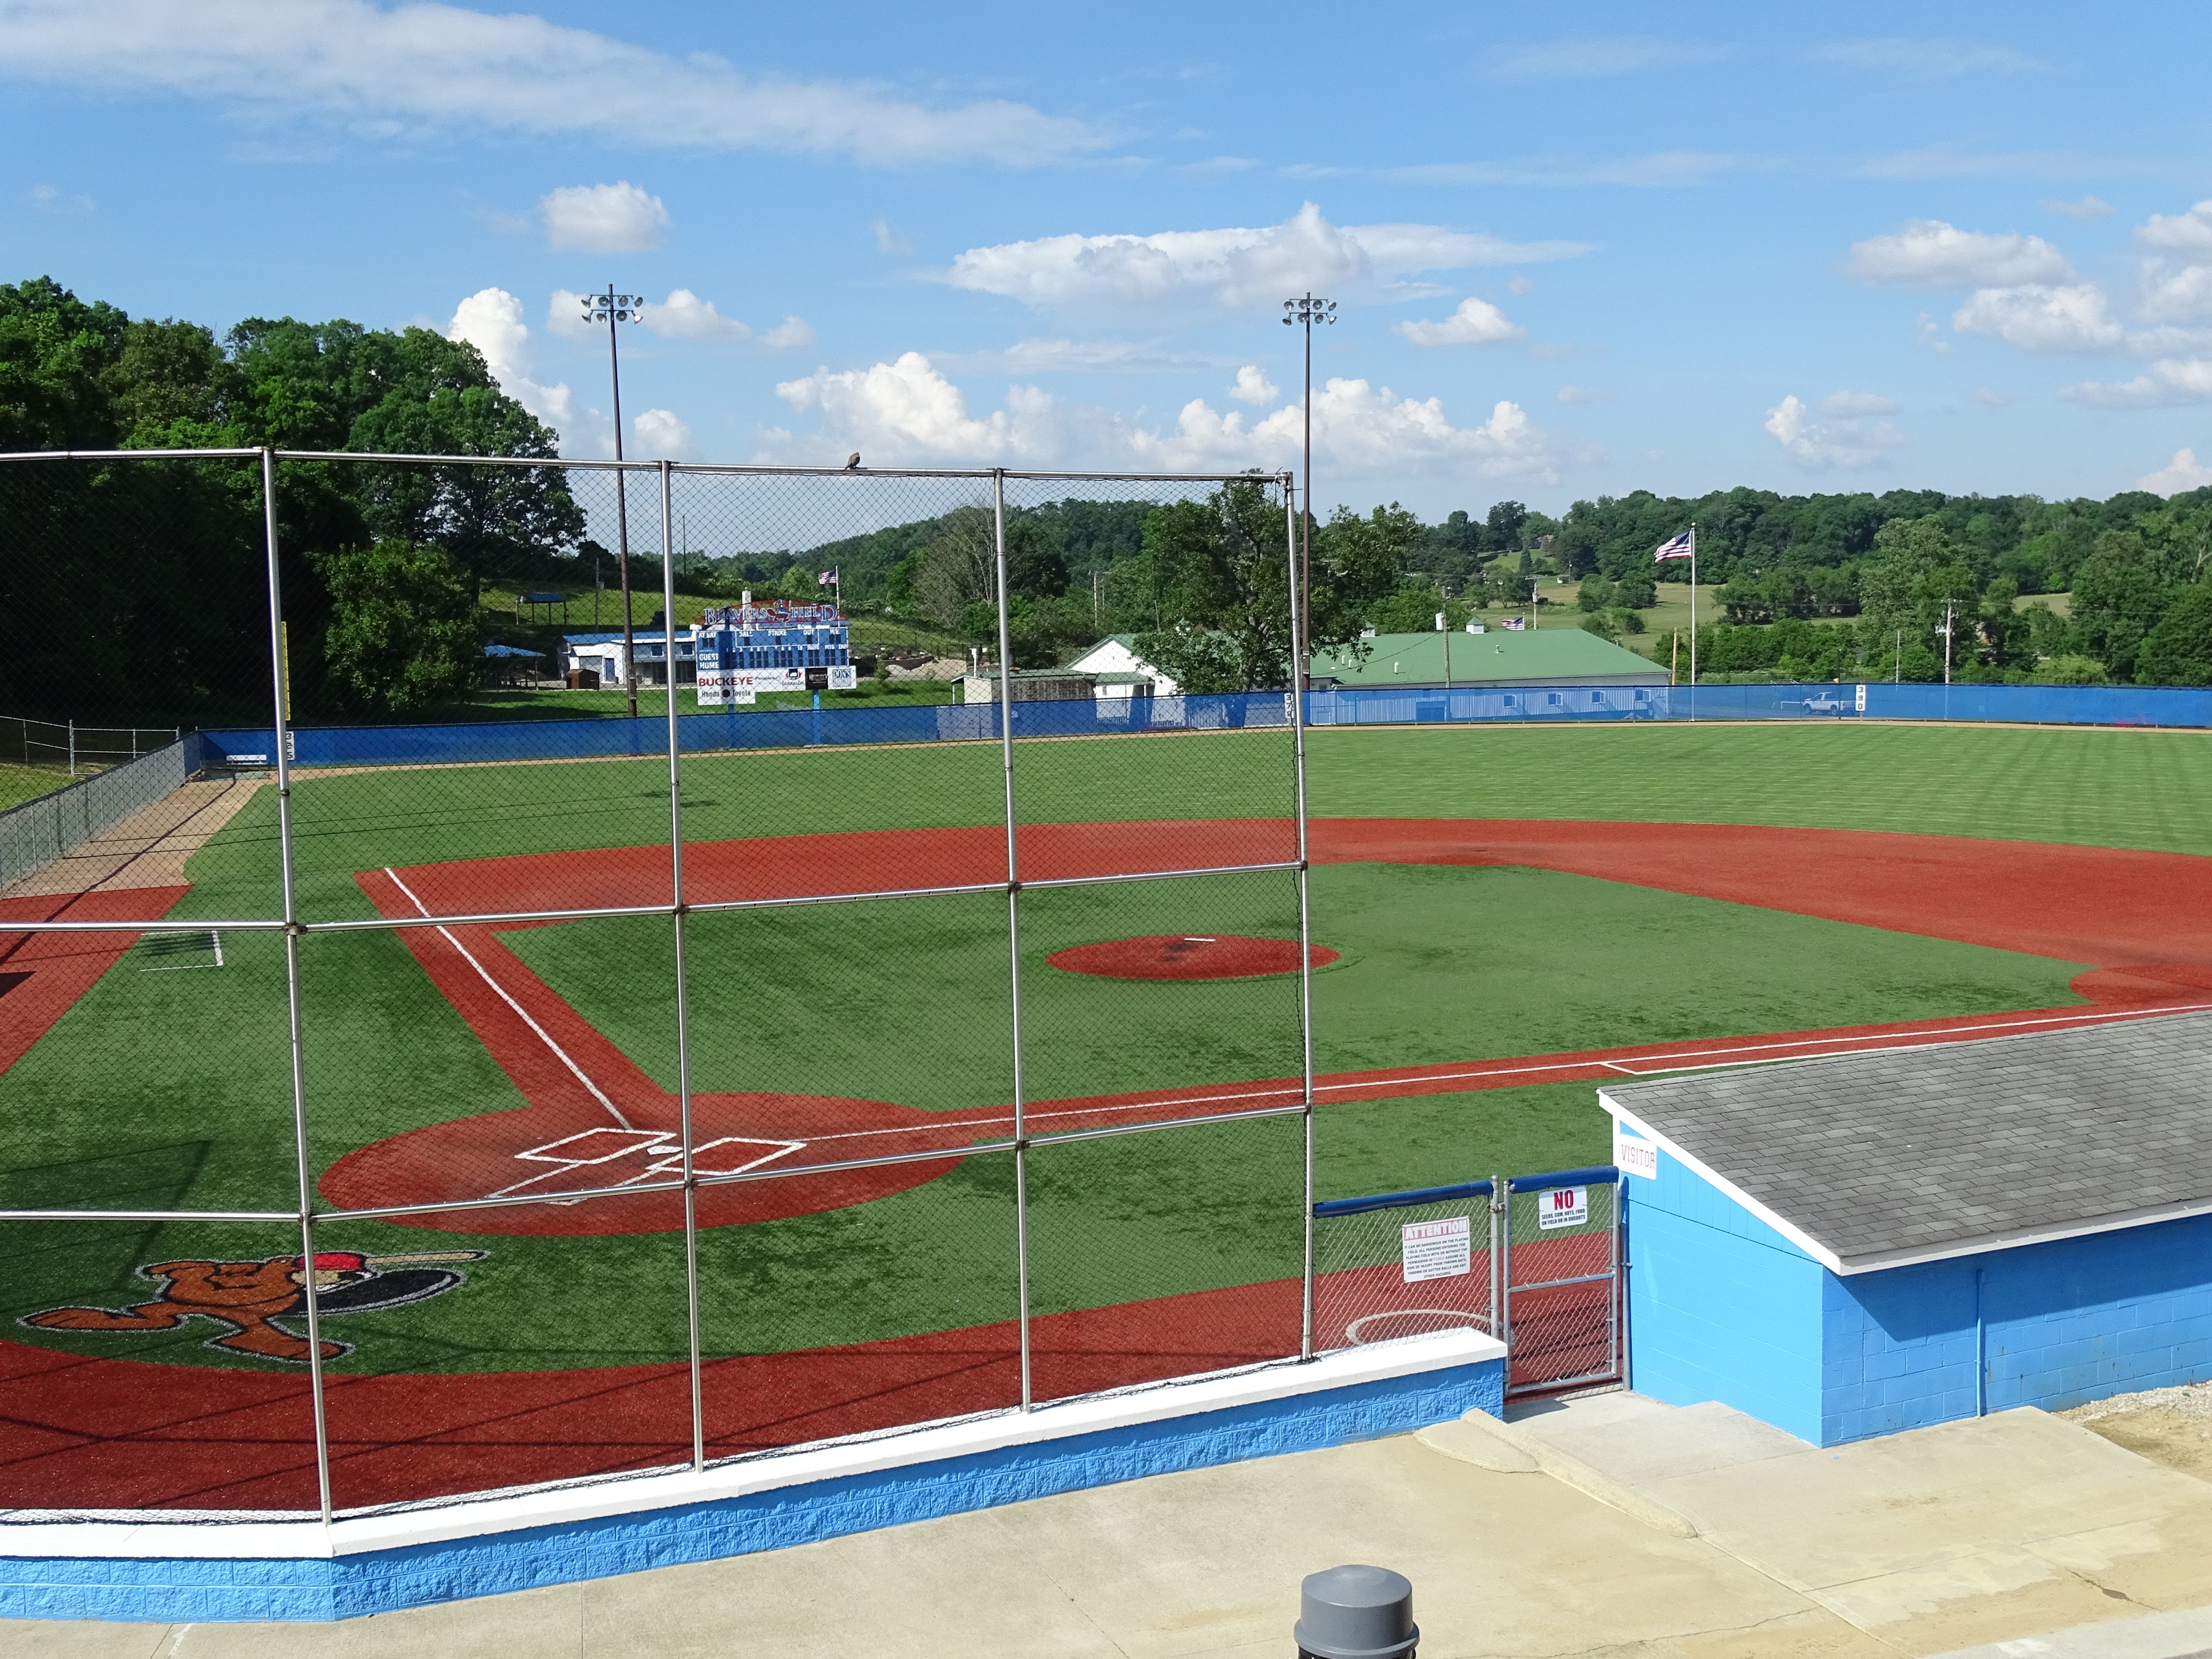 With the postpontment of high school baseball and the cancellation of the college baseball season, no games are being played at Beavers Field.